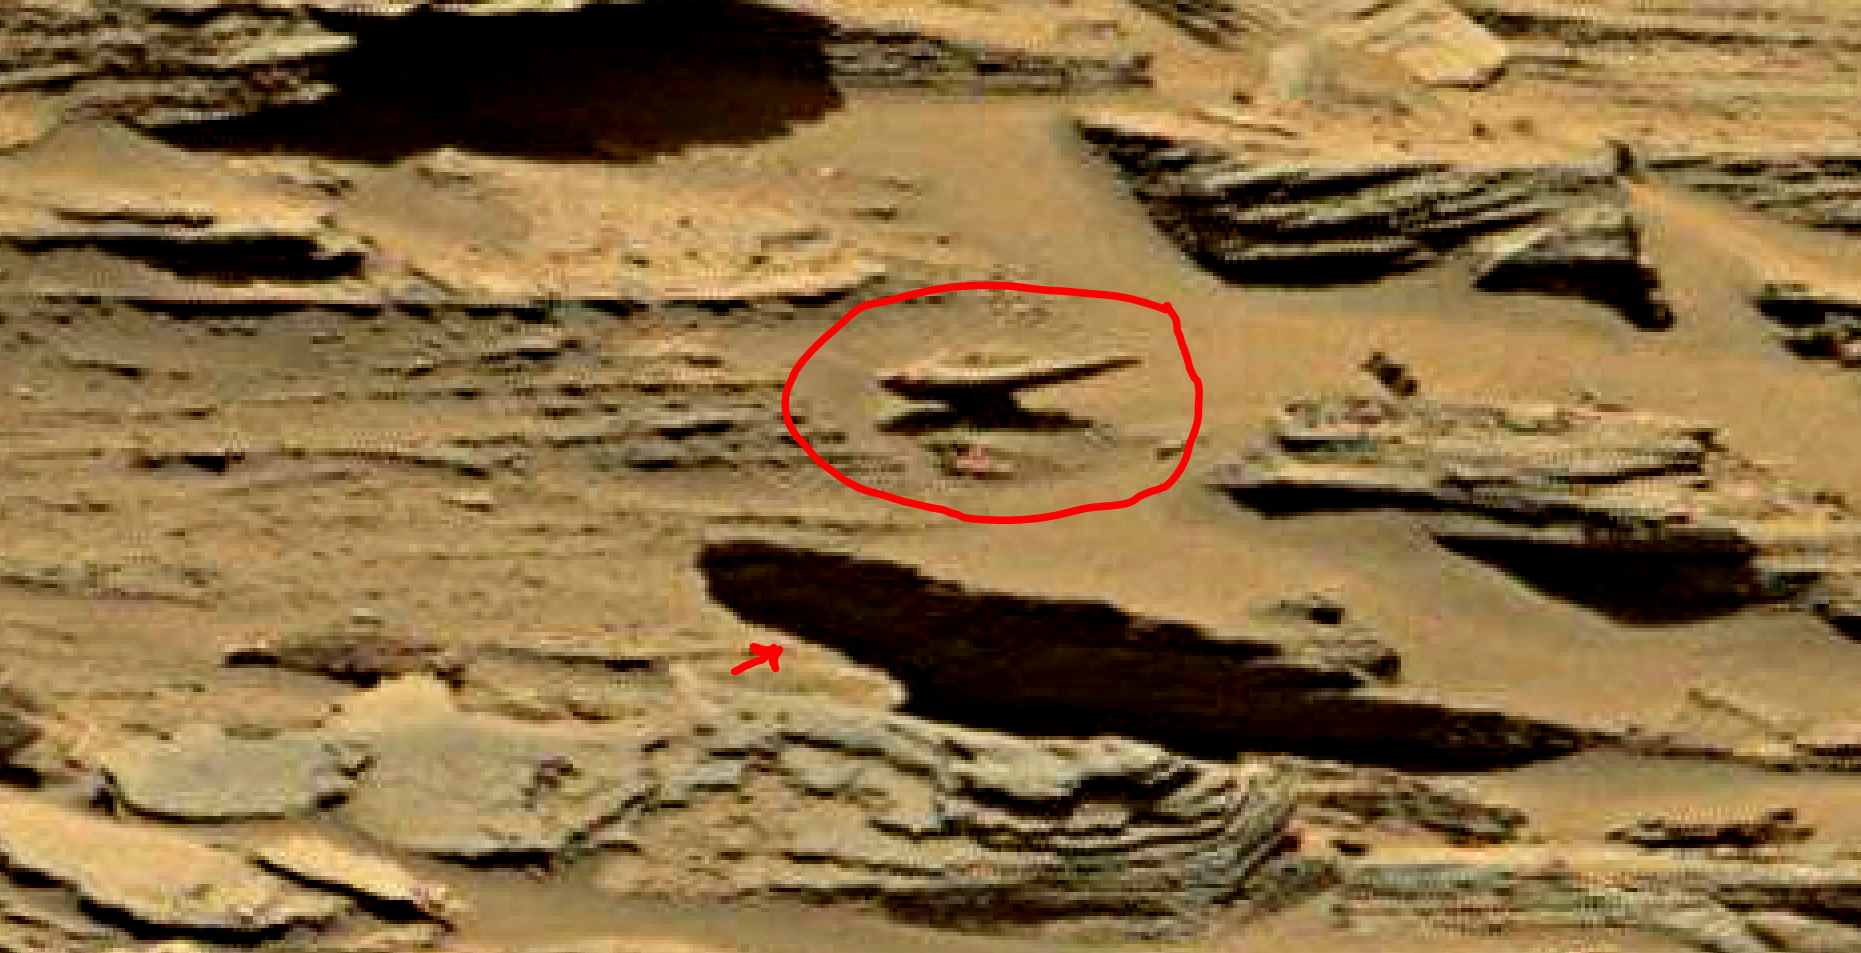 mars sol 1353 anomaly-artifacts 32a1 was life on mars